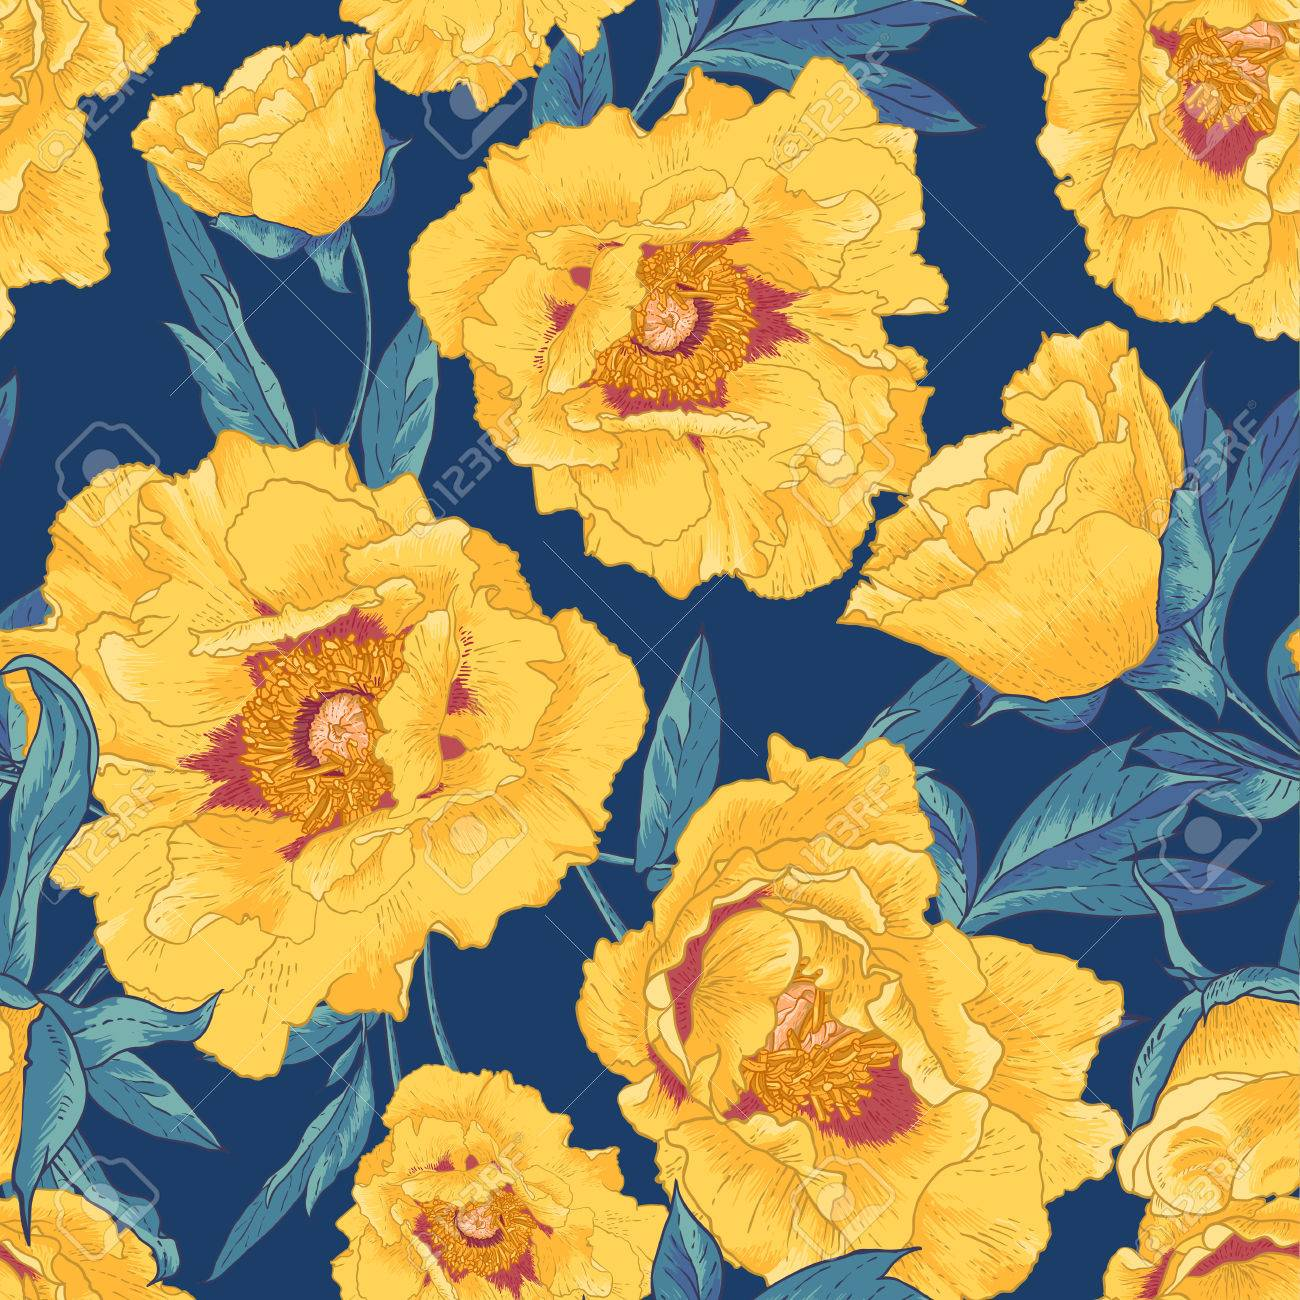 Tropical Seamless Pattern With Yellow Flowers Royalty Free Cliparts